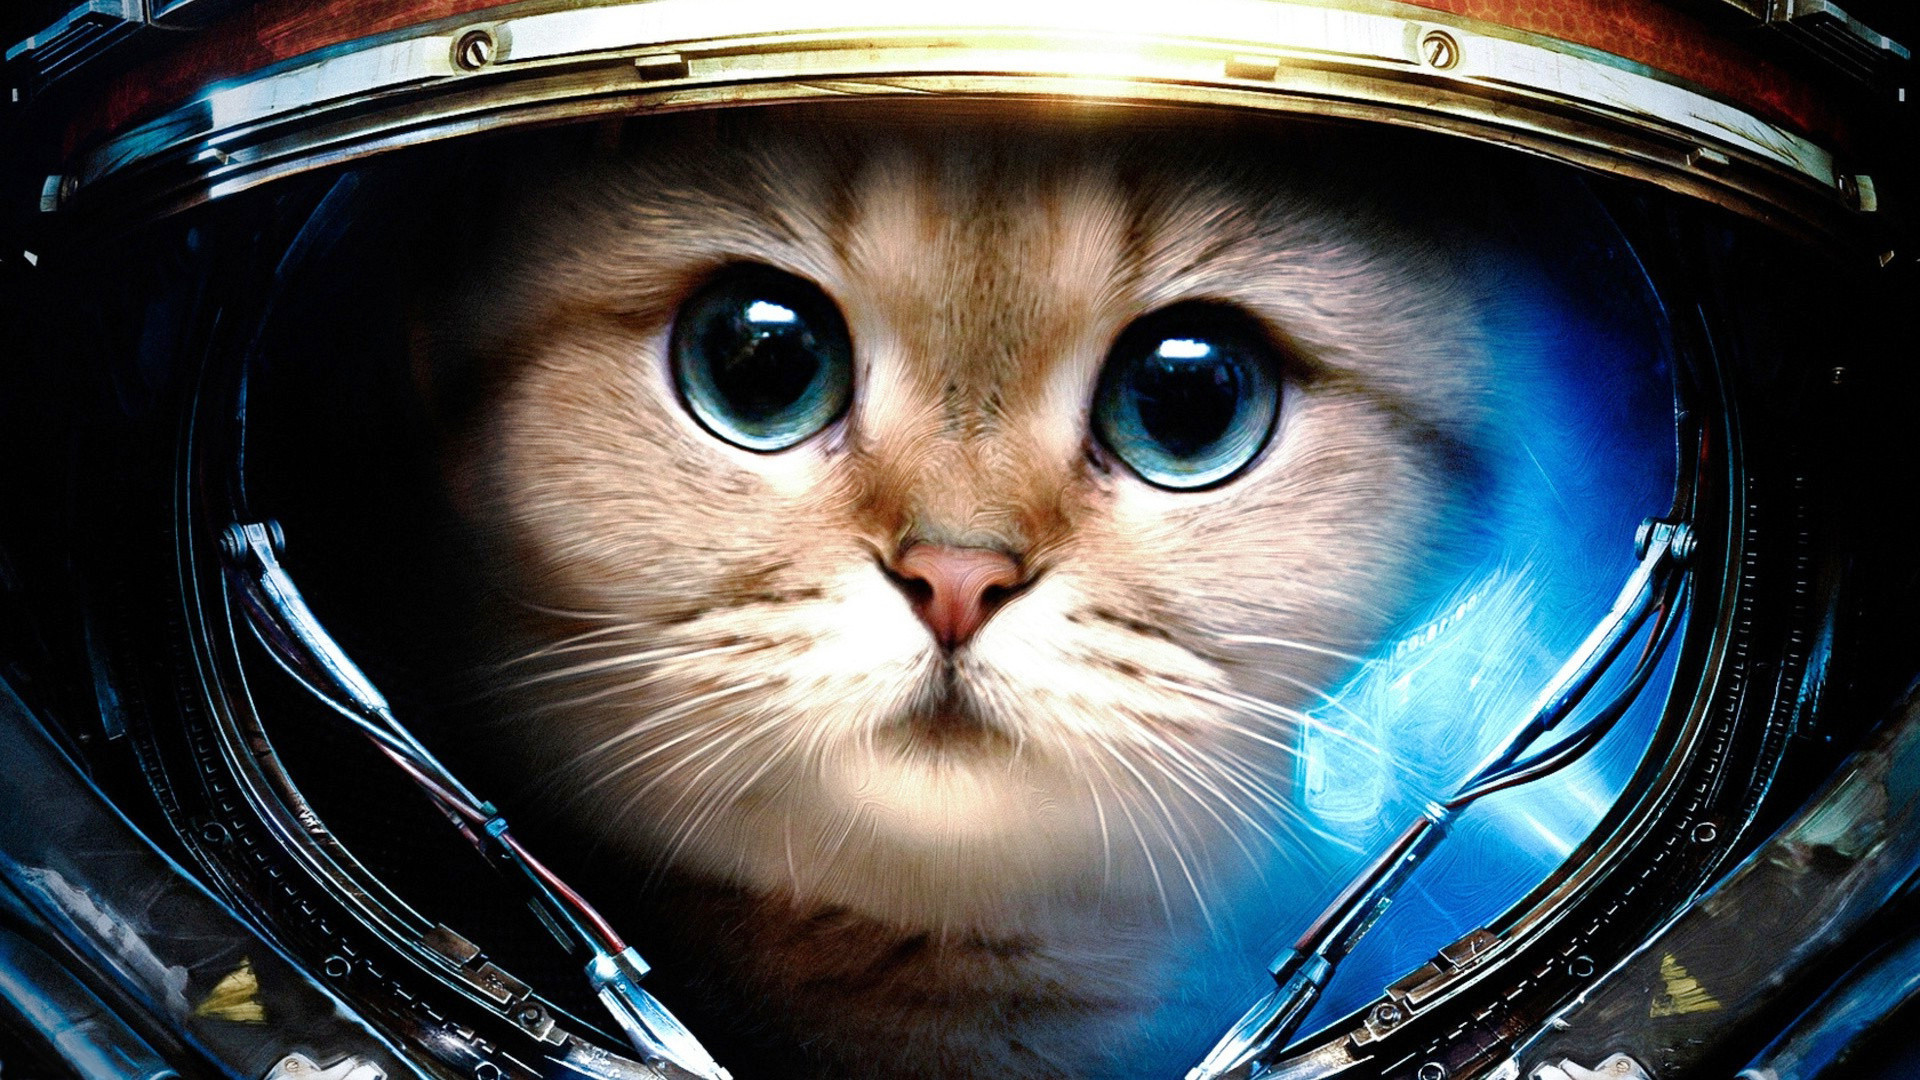 hhxmJb space cat wallpapers background cat